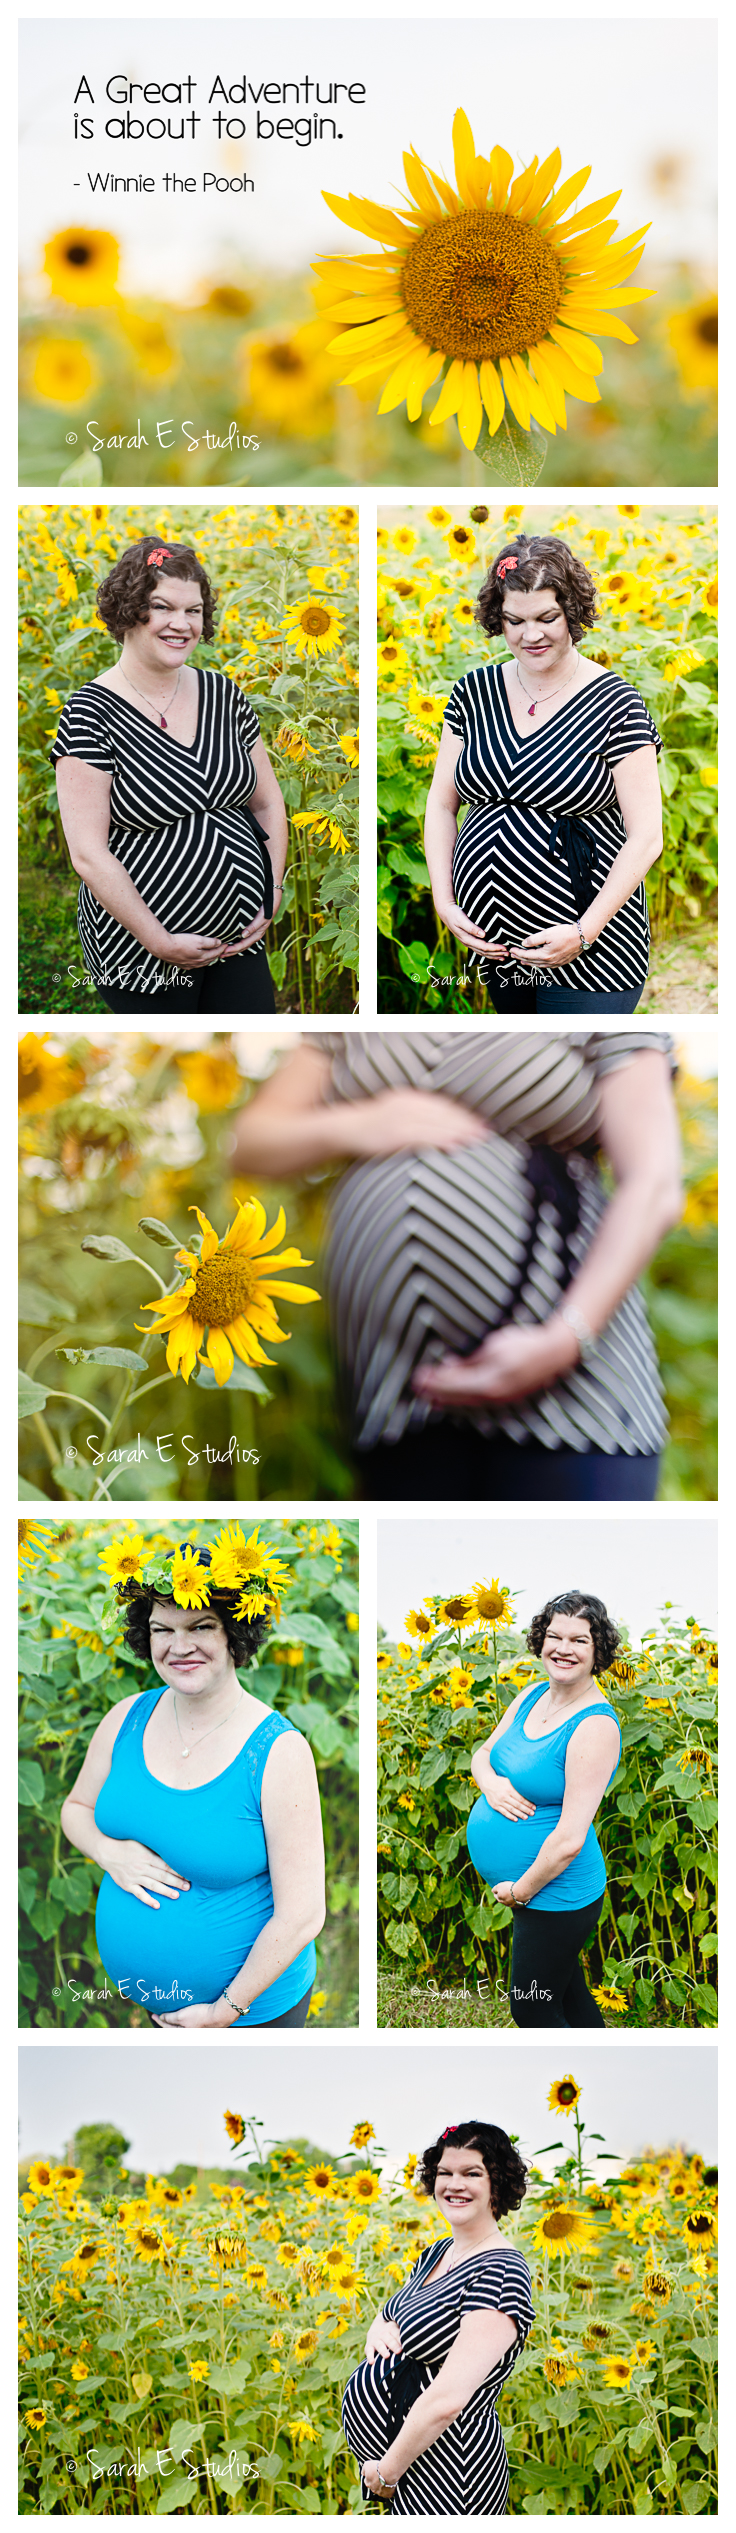 Maternity Session in a Sunflower Field